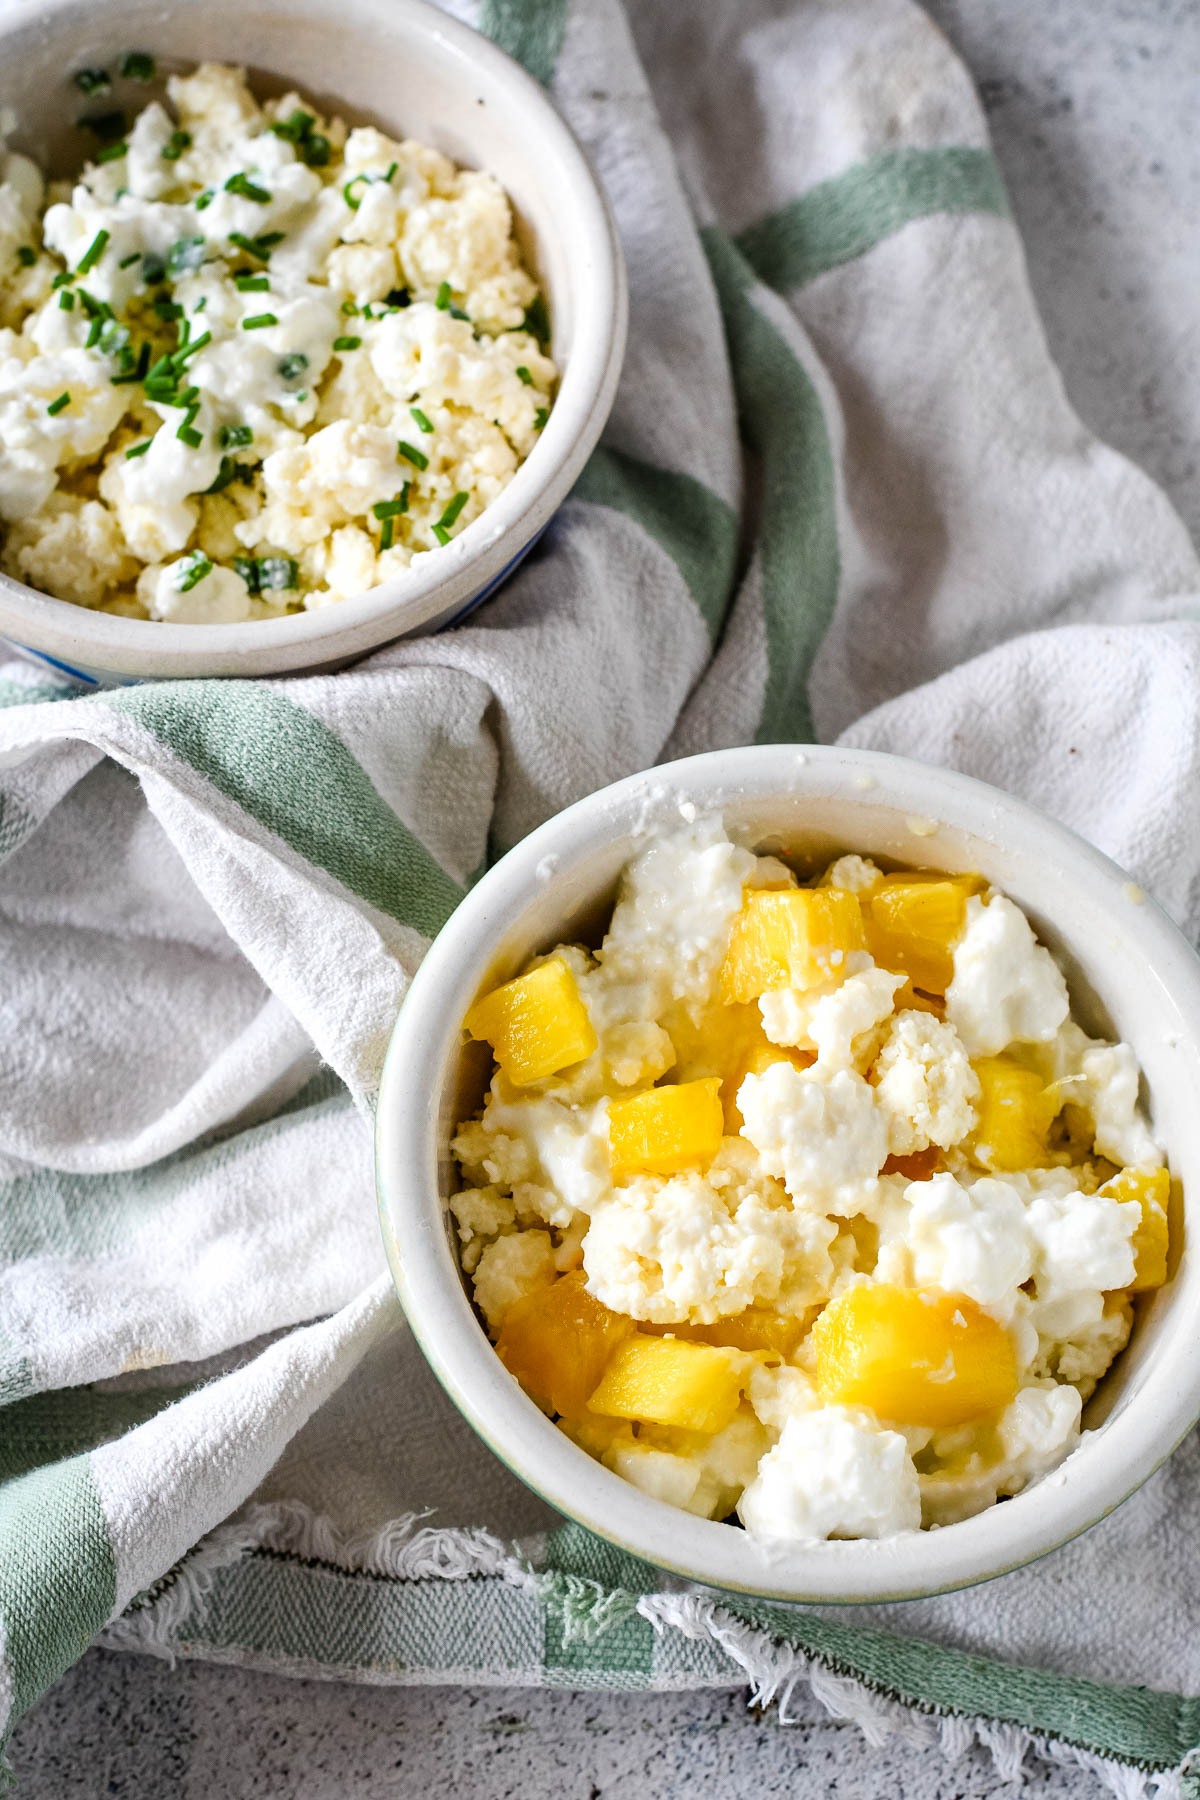 cottage cheese with pineapple and also with chives